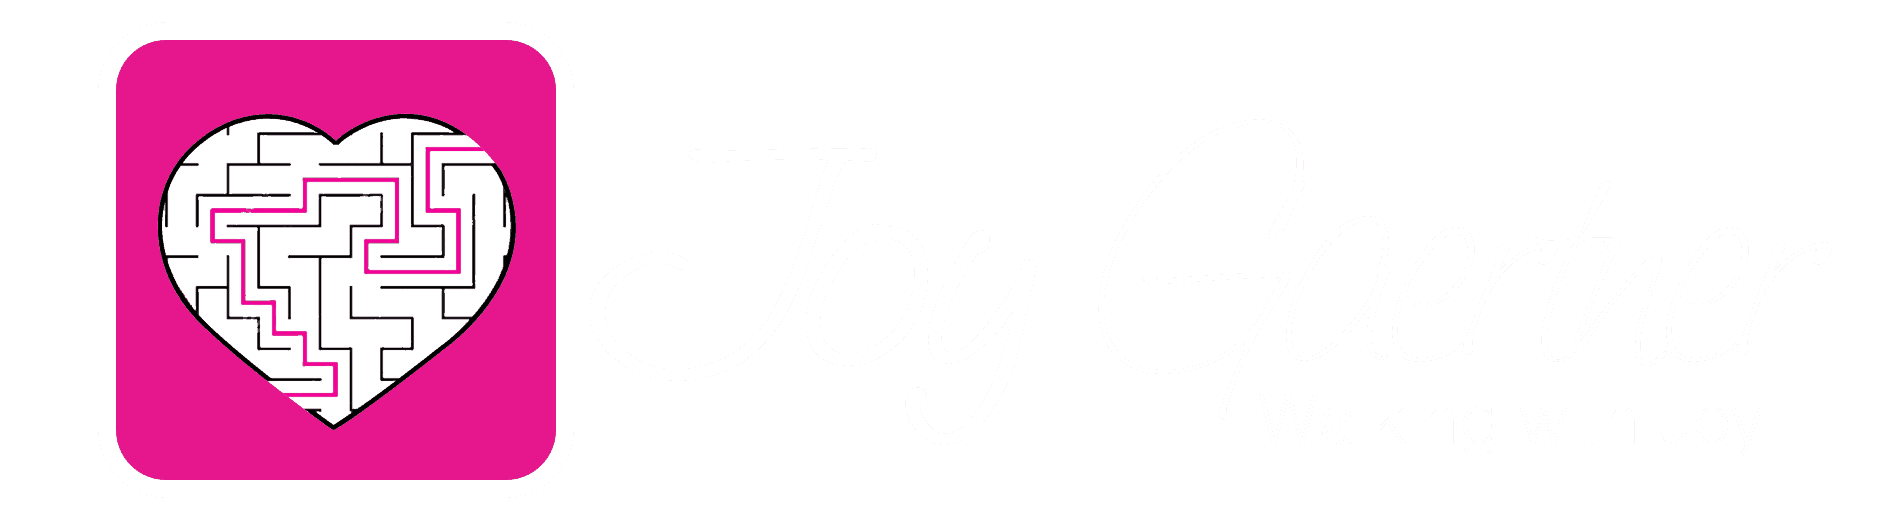 Joy Gaertner Walking with Joy logo